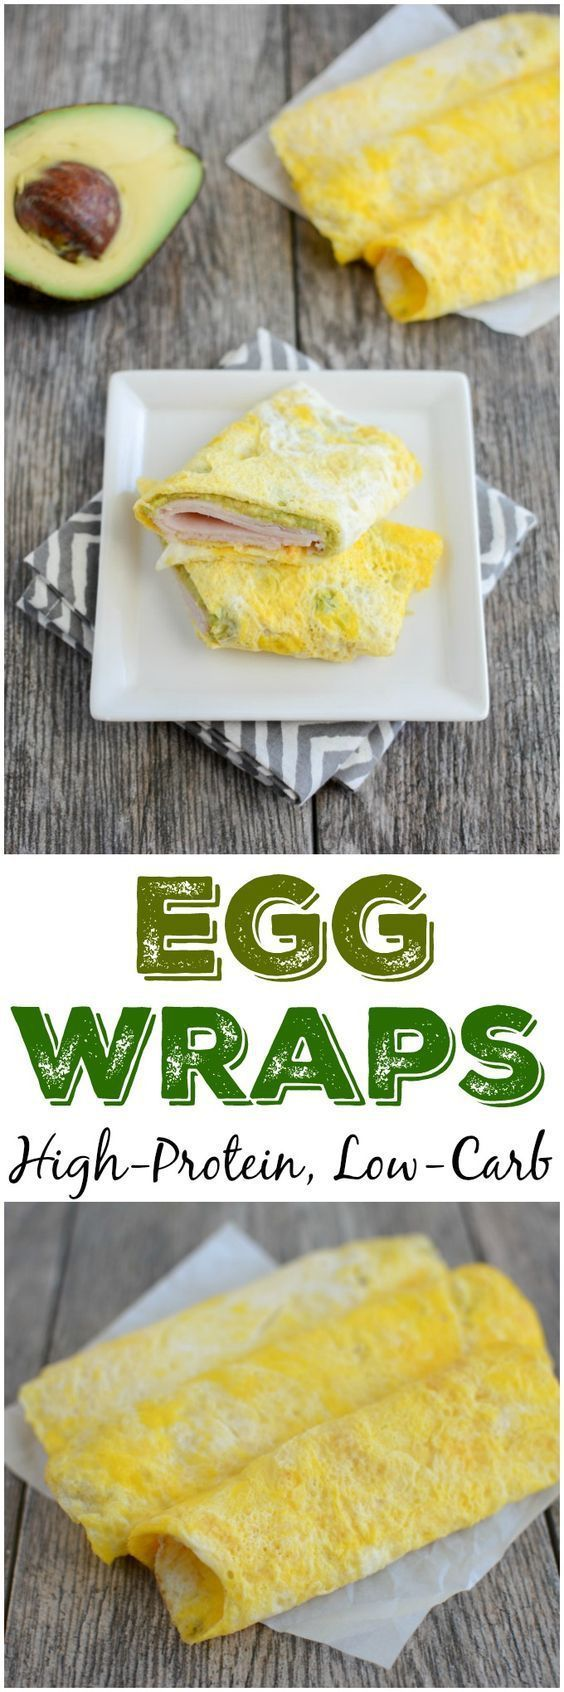 Egg wraps. Low carb, keto, LCHF #breakfast